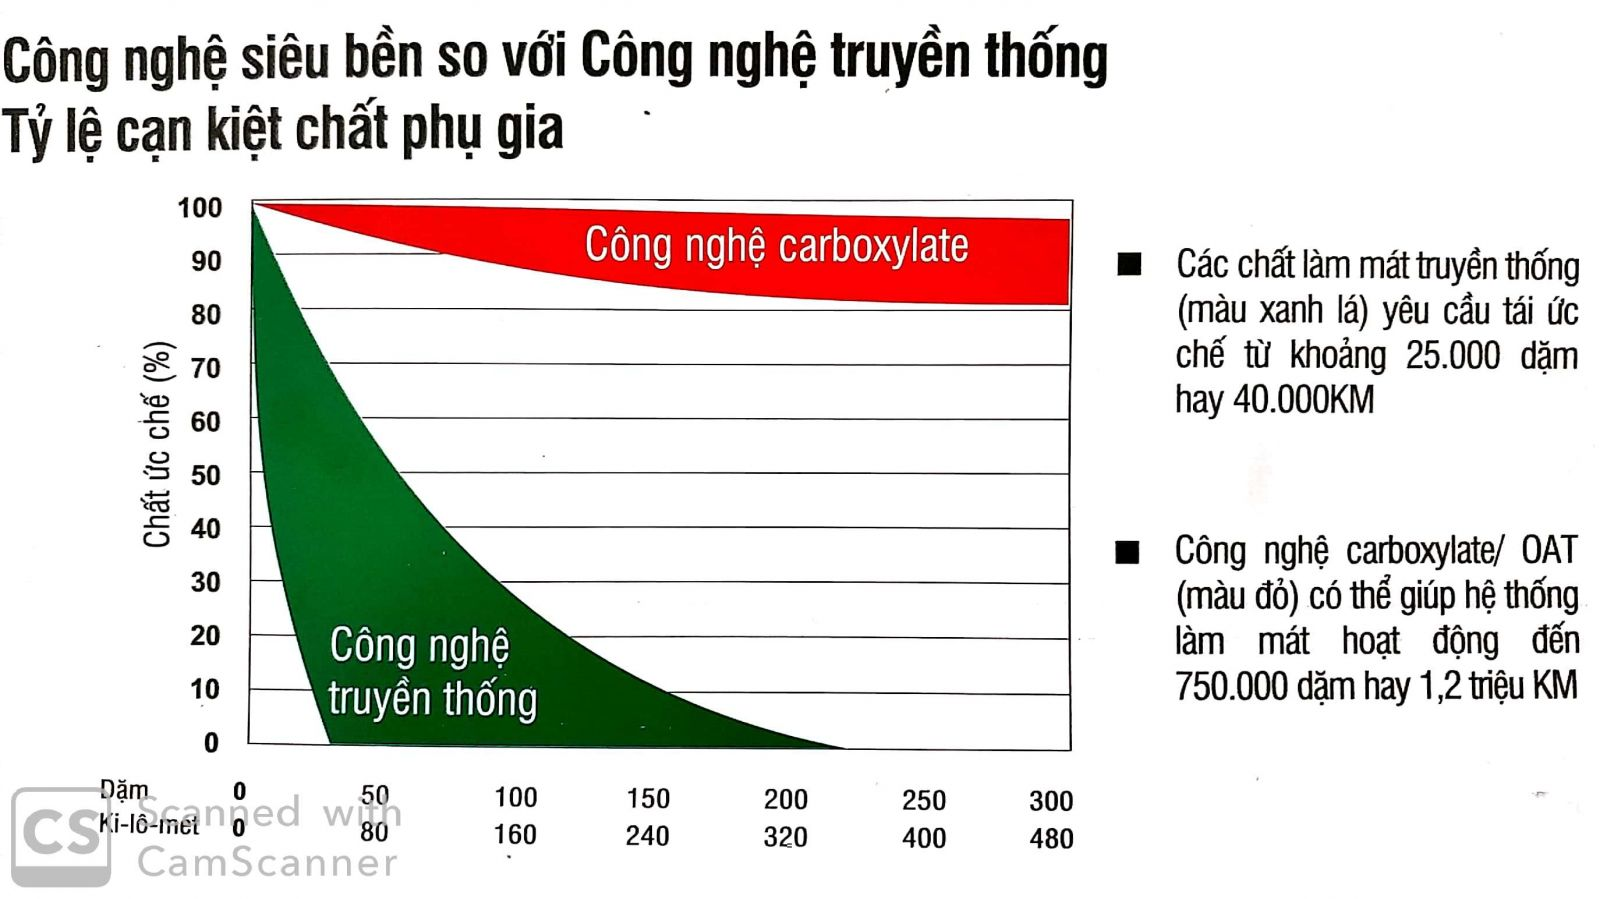 cong nghe axit huu co